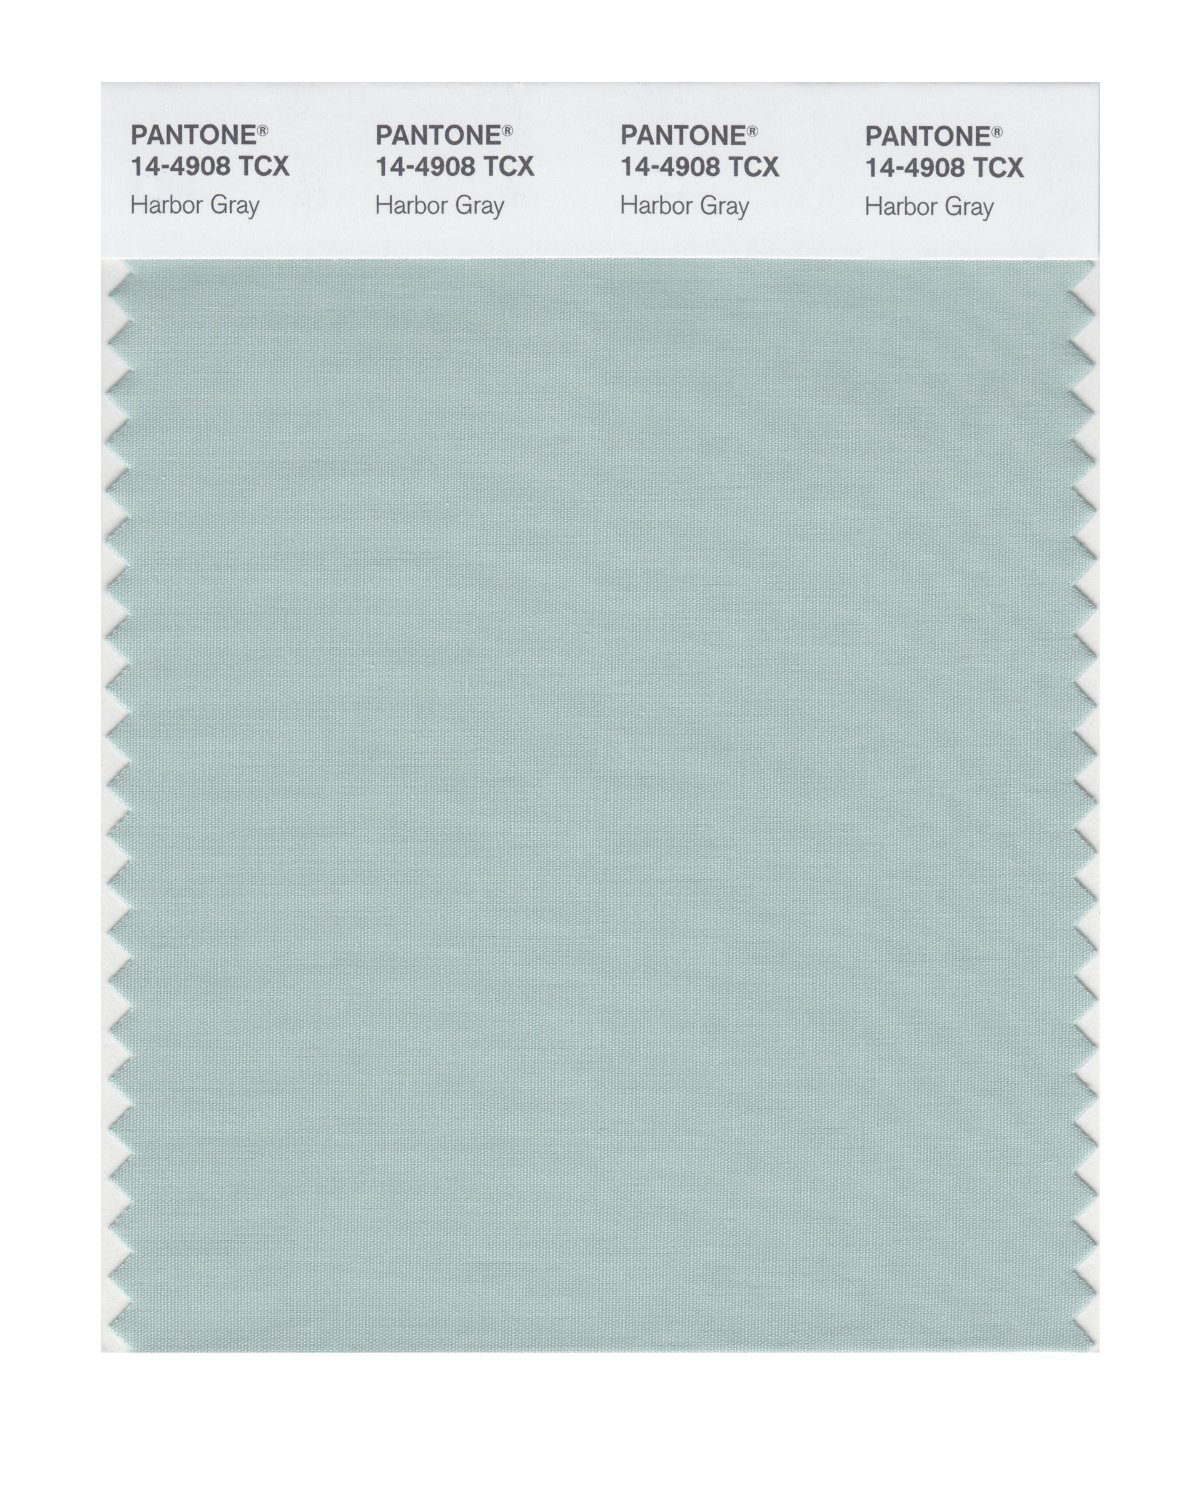 Pantone Smart Swatch 14-4908 Harbor Gray